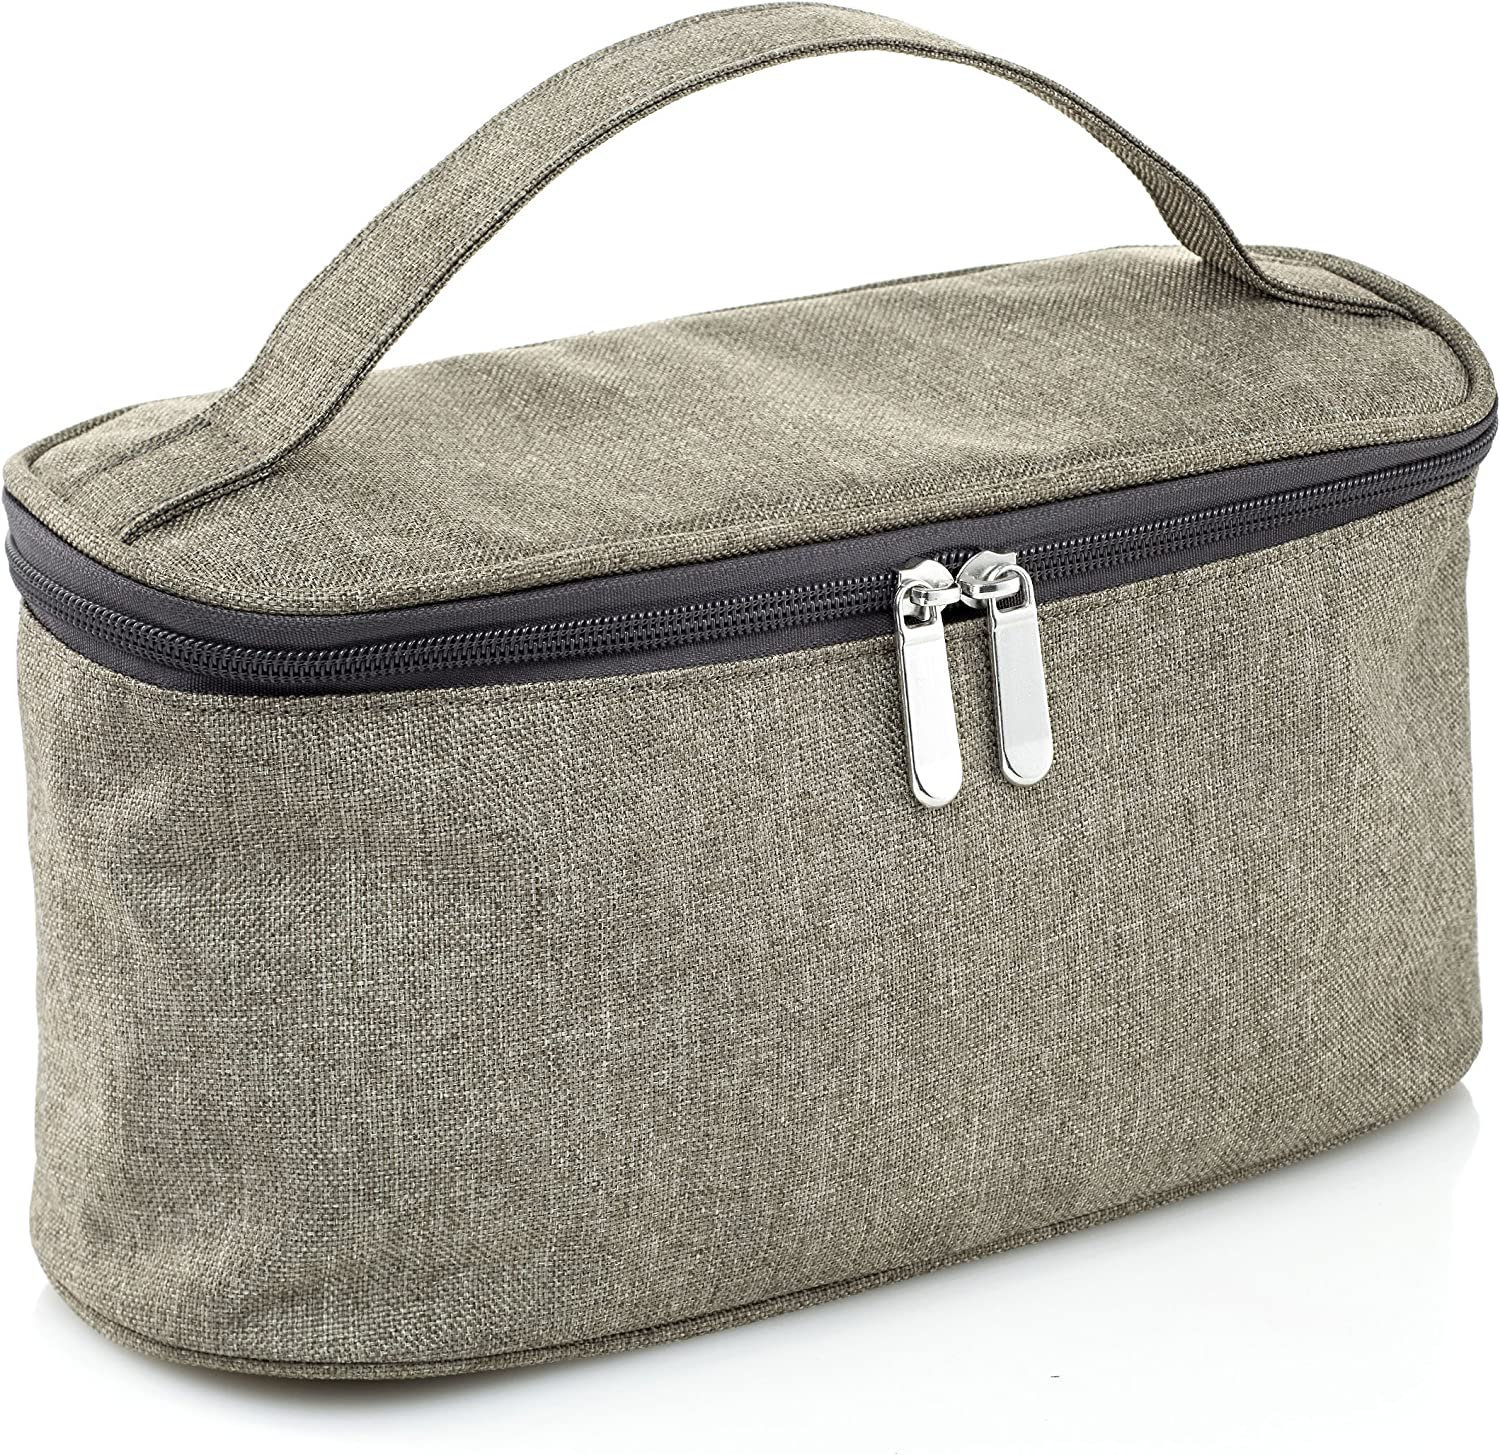 LeSac Large Cosmetic Bag with Mirror Travel Toiletry Bag Organizer Clutch Makeup Bag